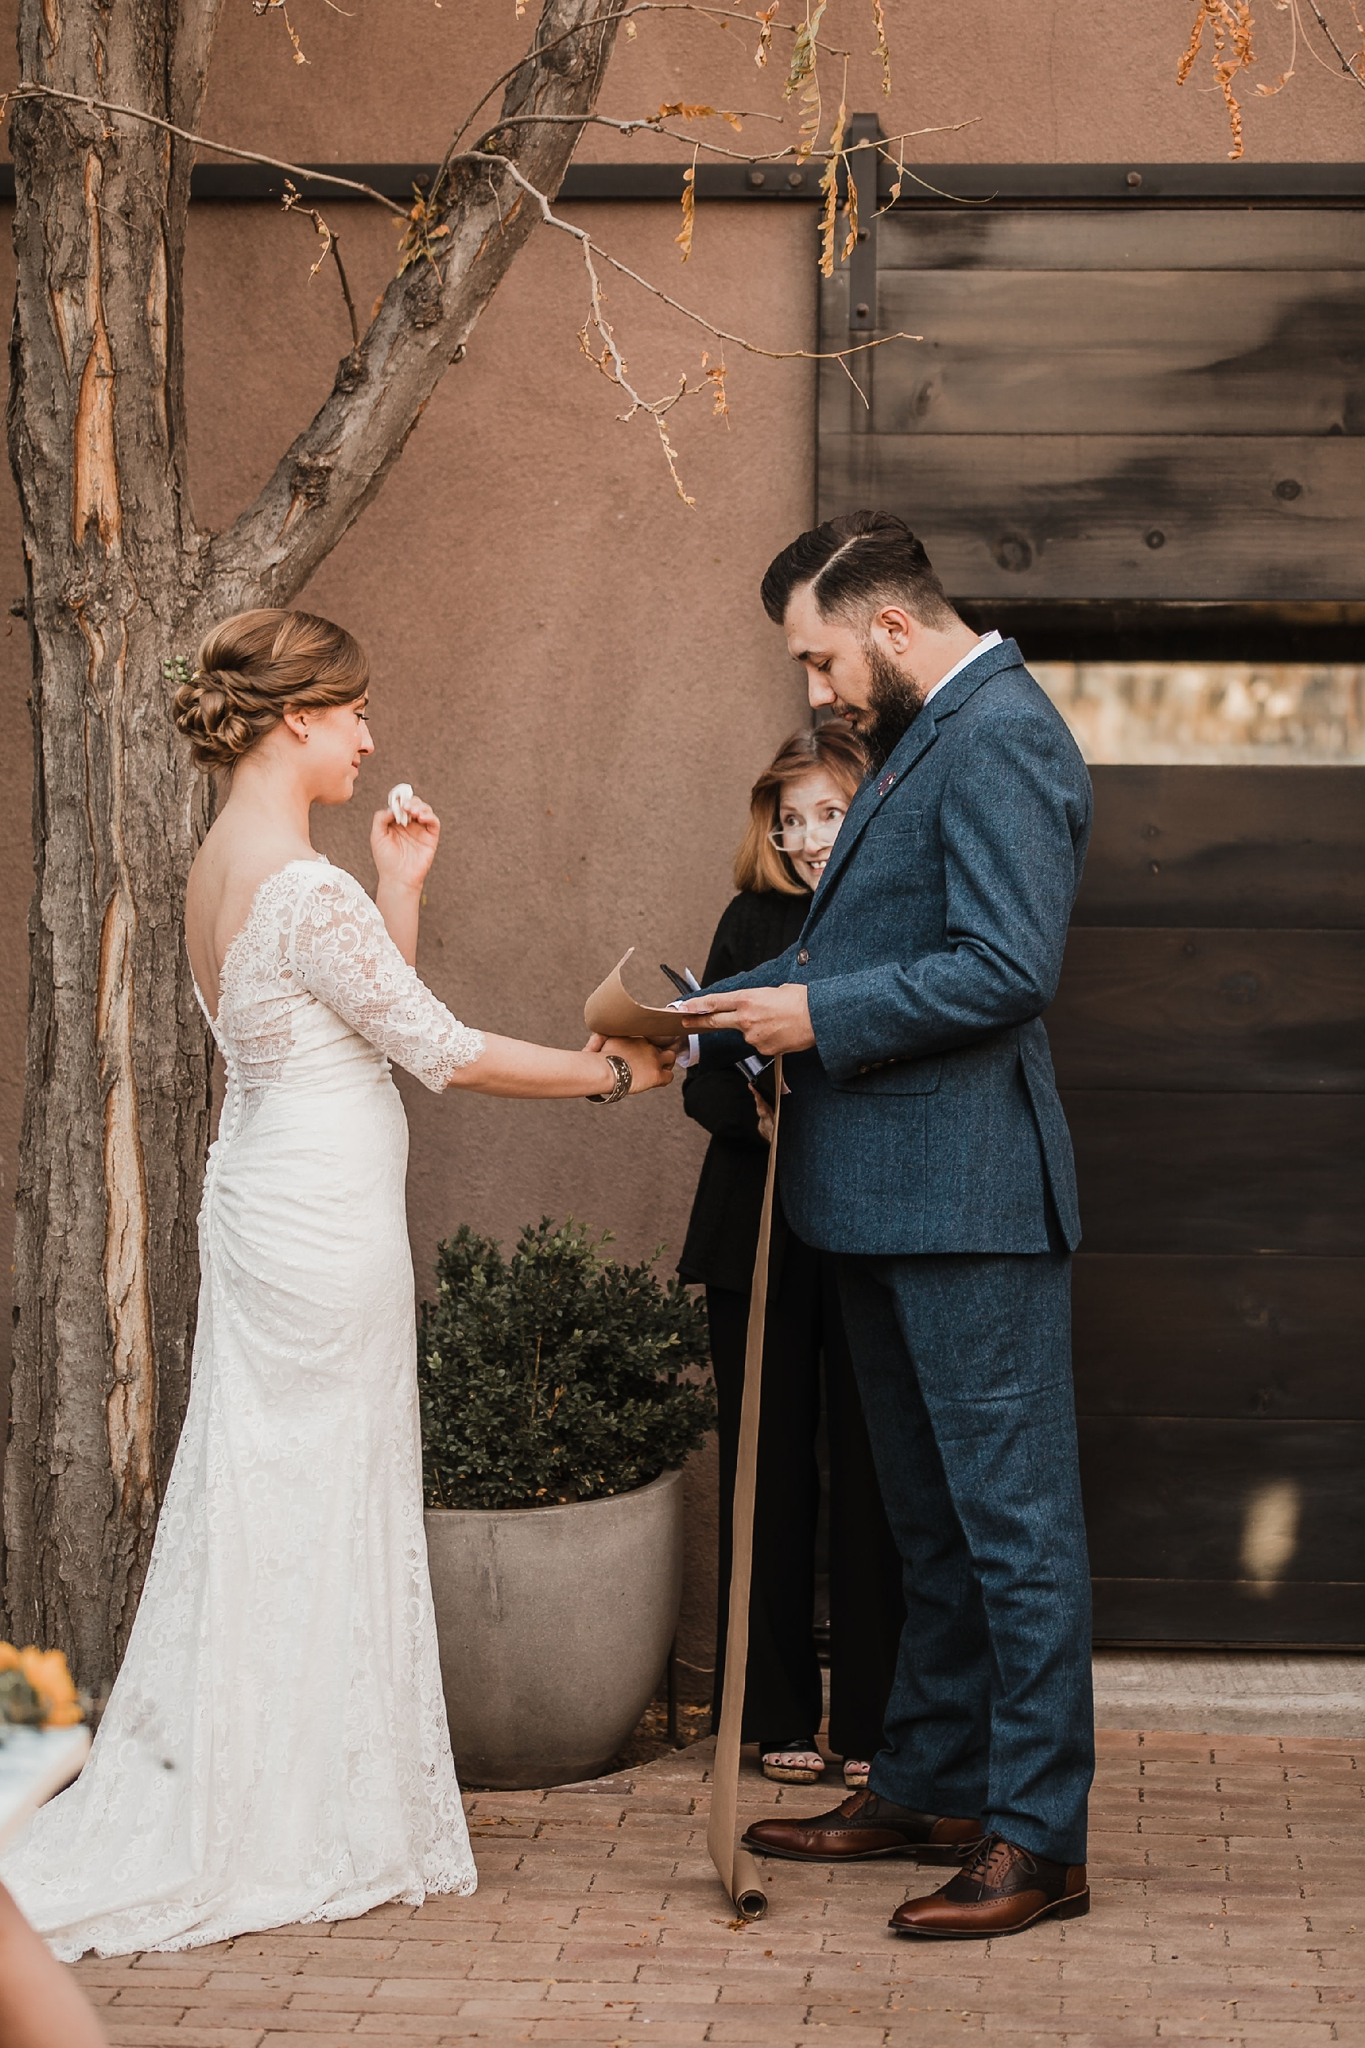 Alicia+lucia+photography+-+albuquerque+wedding+photographer+-+santa+fe+wedding+photography+-+new+mexico+wedding+photographer+-+albuquerque+wedding+-+sarabande+bed+breakfast+-+bed+and+breakfast+wedding_0056.jpg